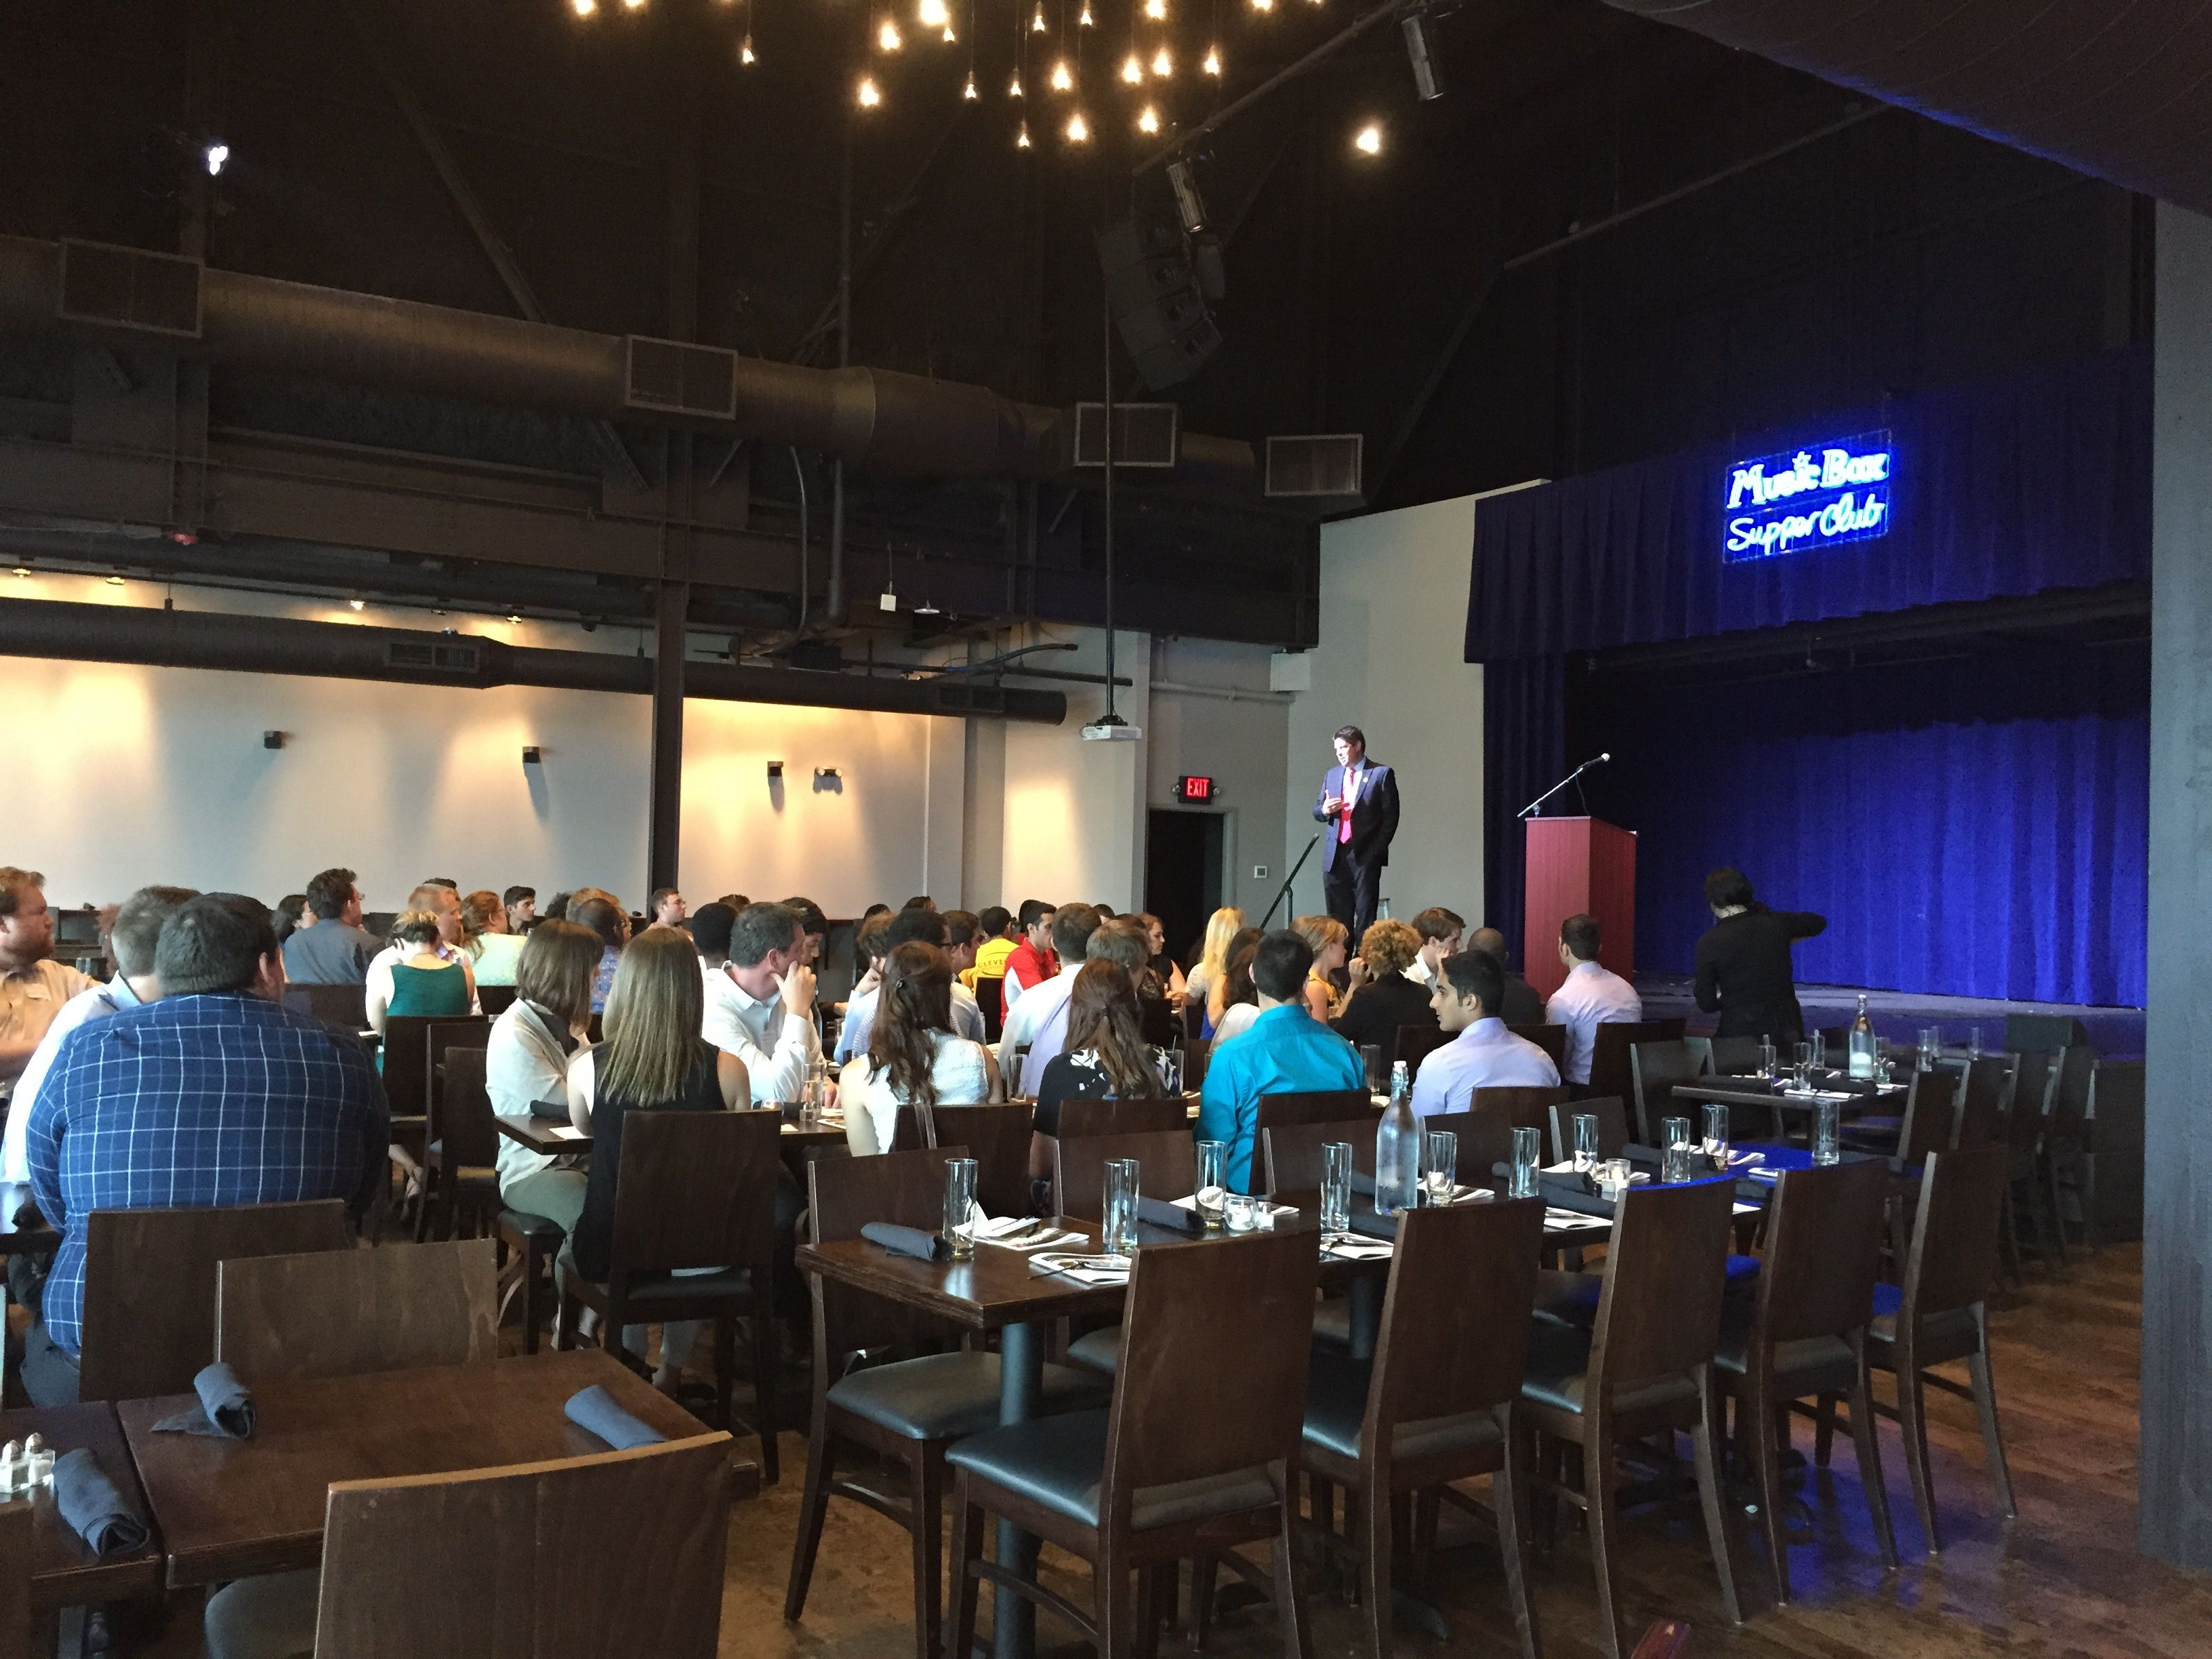 Our Event On July 29 2015 With Young Cleveland Leaders The Music Box Supper Club Rusty Anchor Corporate Events Supper Club Photo